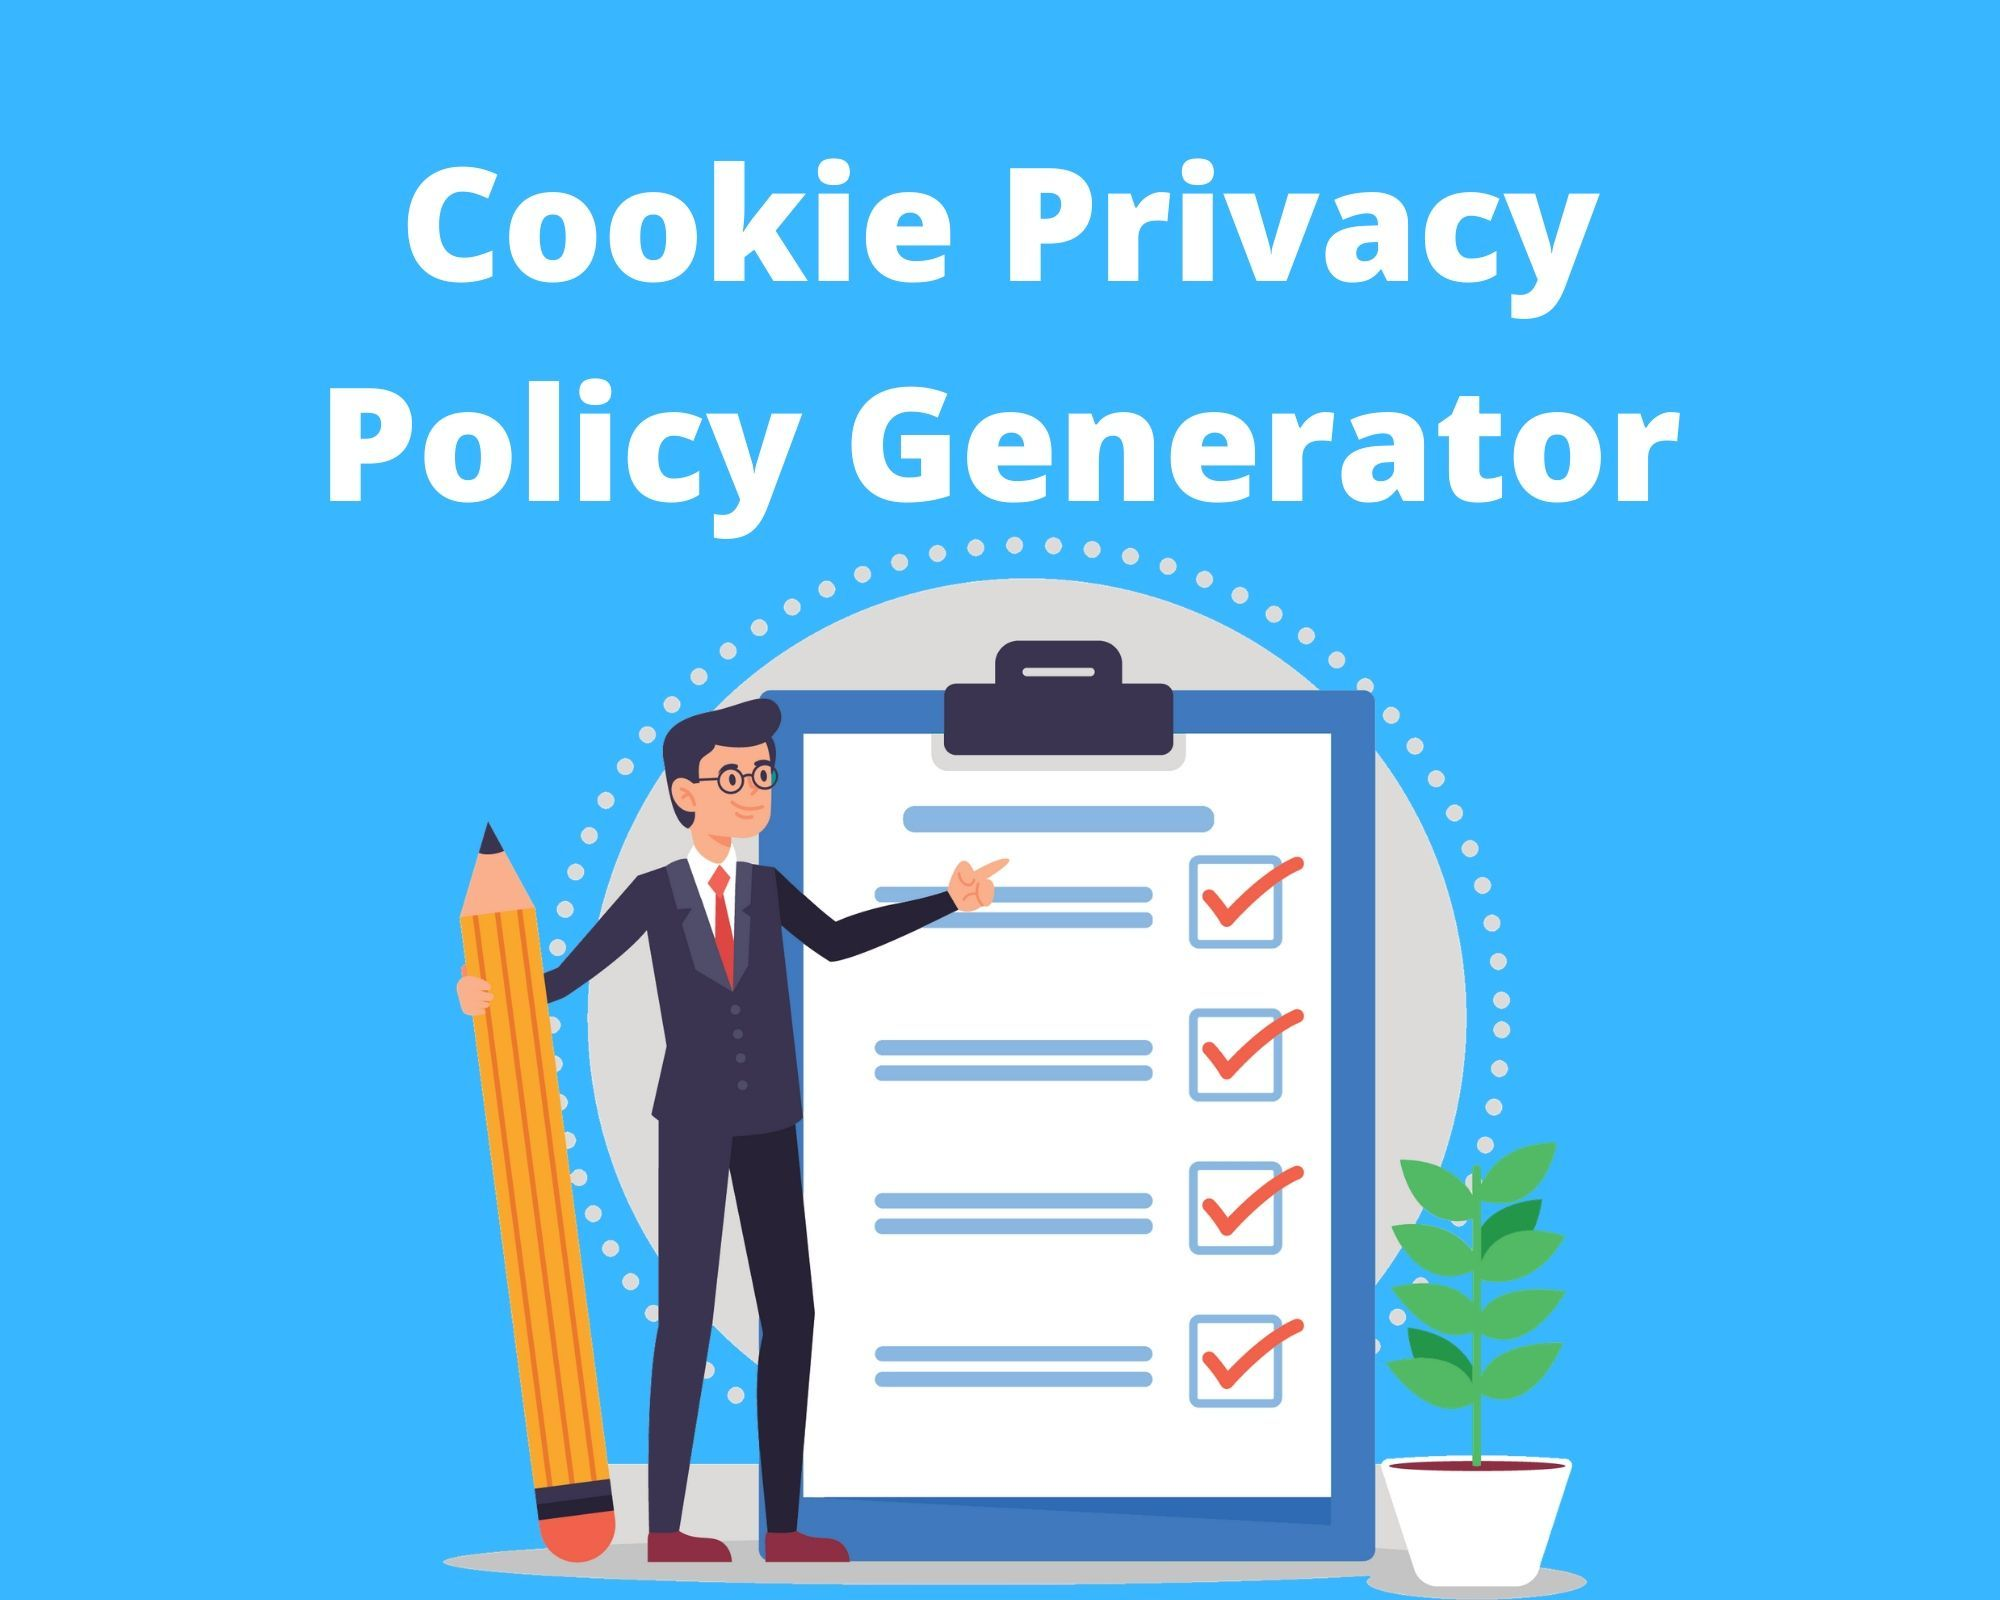 Websitecookiepolicygenerator Privacypolicycookies Mobile App Cookie Policy In 2020 Generation Privacy Policy Policies